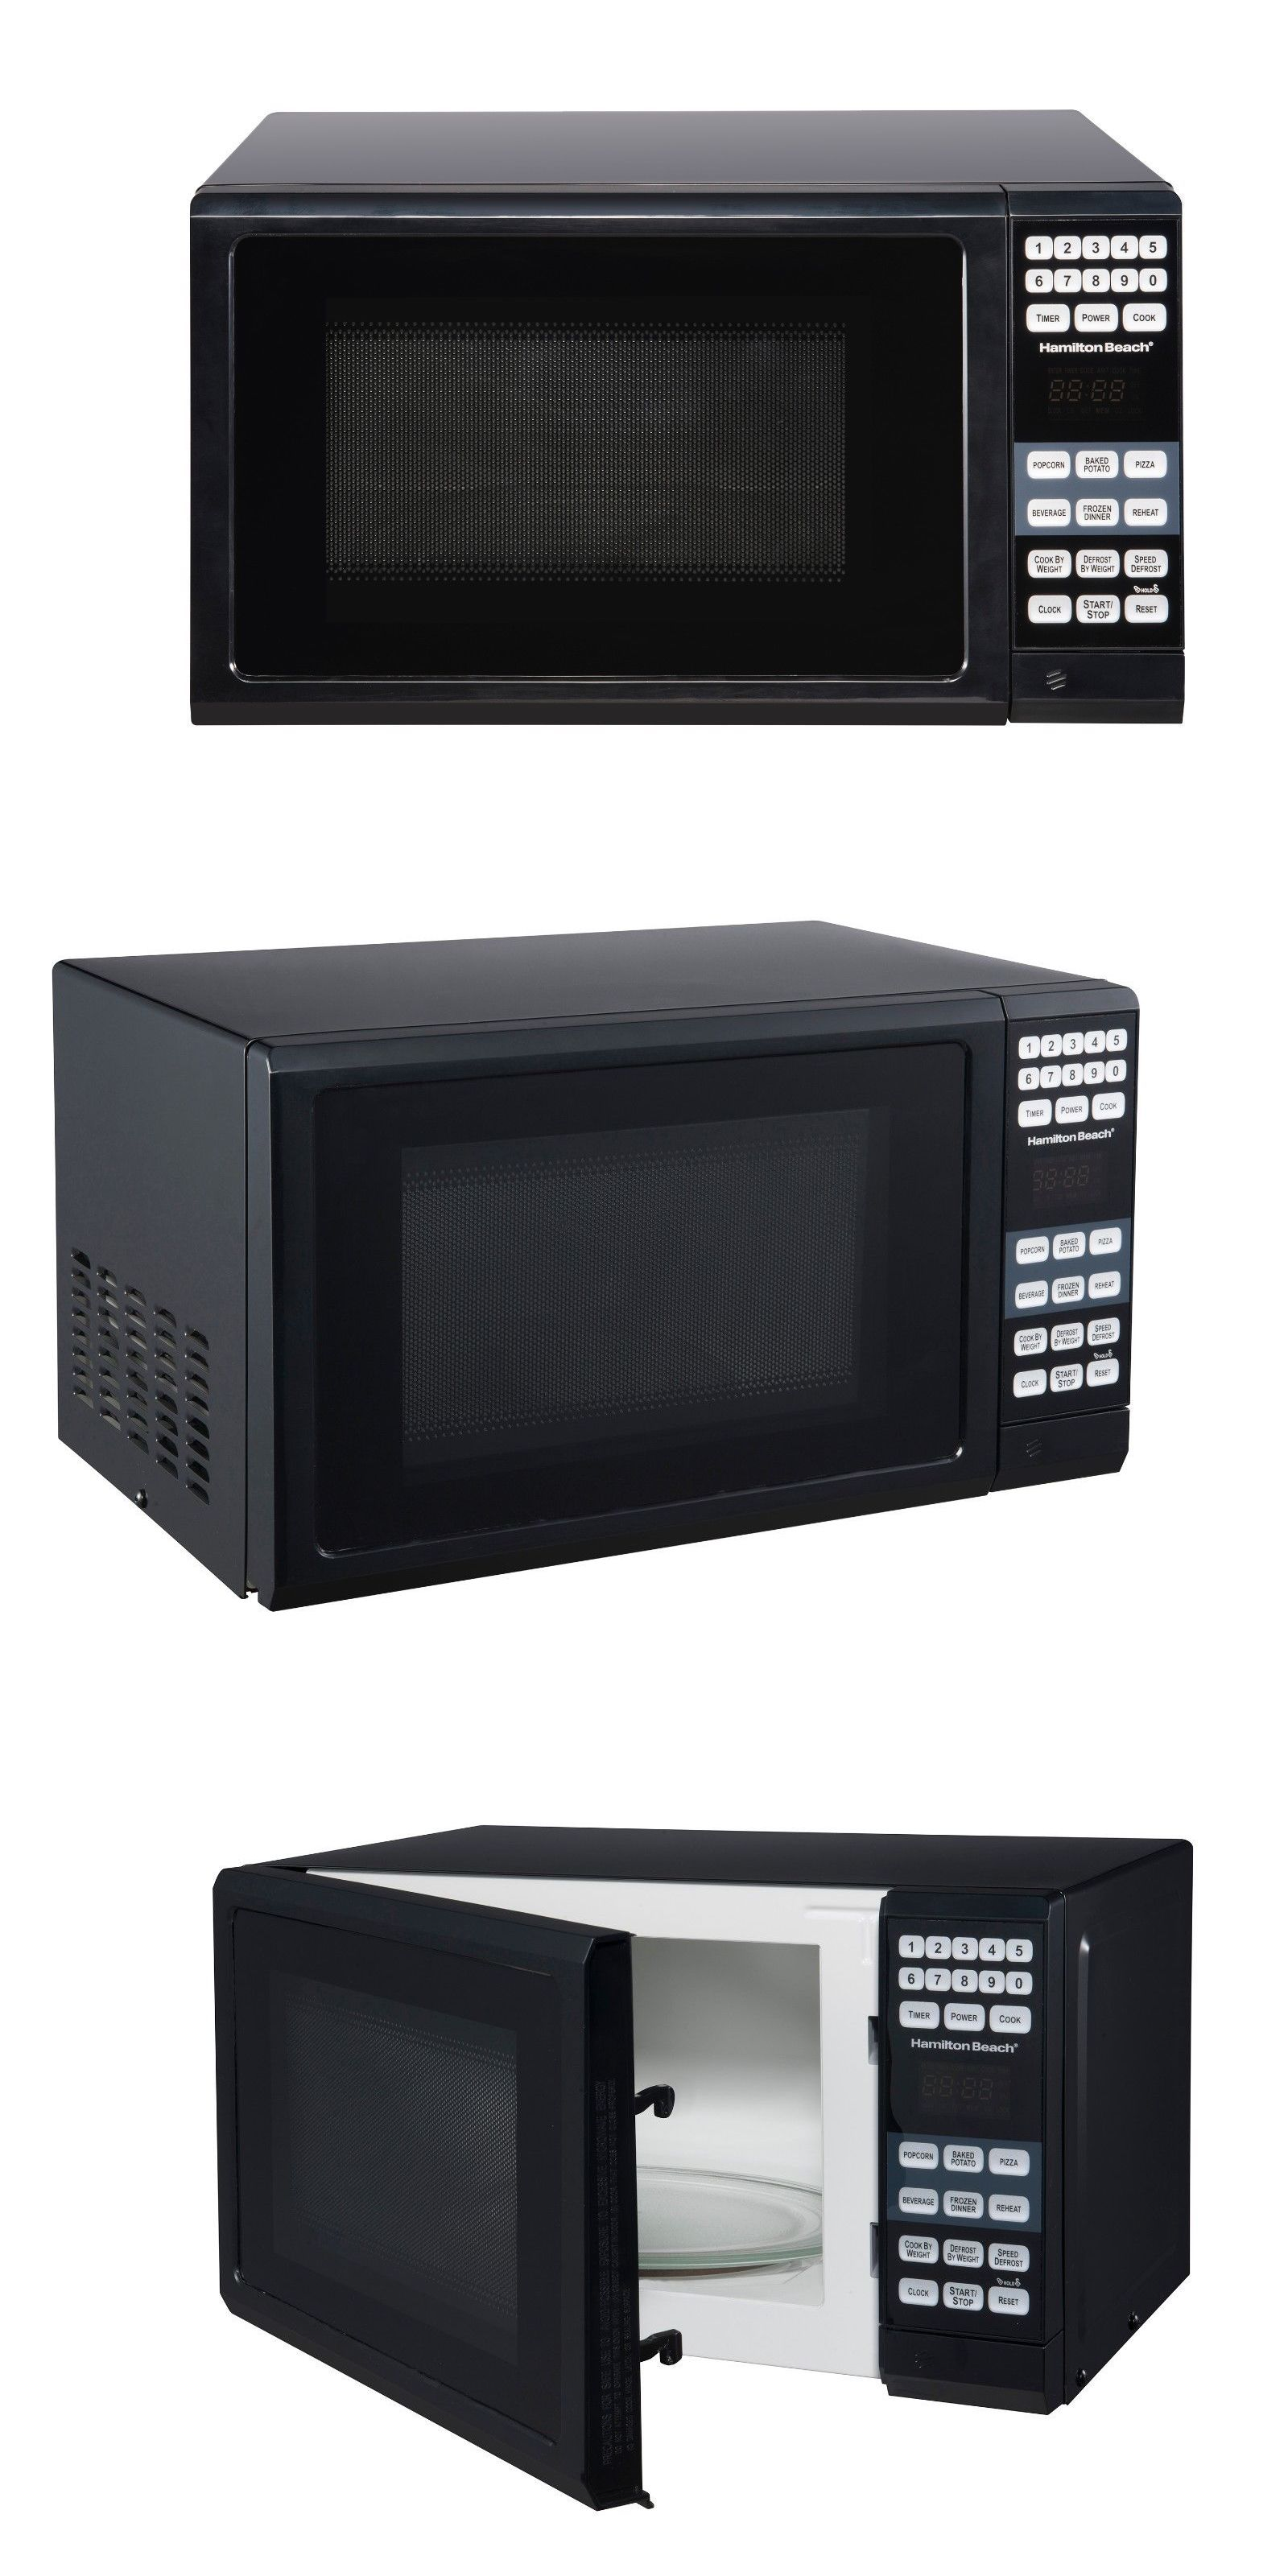 Microwave Ovens 150140 New Hamilton Beach 0 7 Cu Ft Microwave Oven 700w Black Buy It Now Only 52 On Ebay Microwave Microwave Oven Microwave Ovens